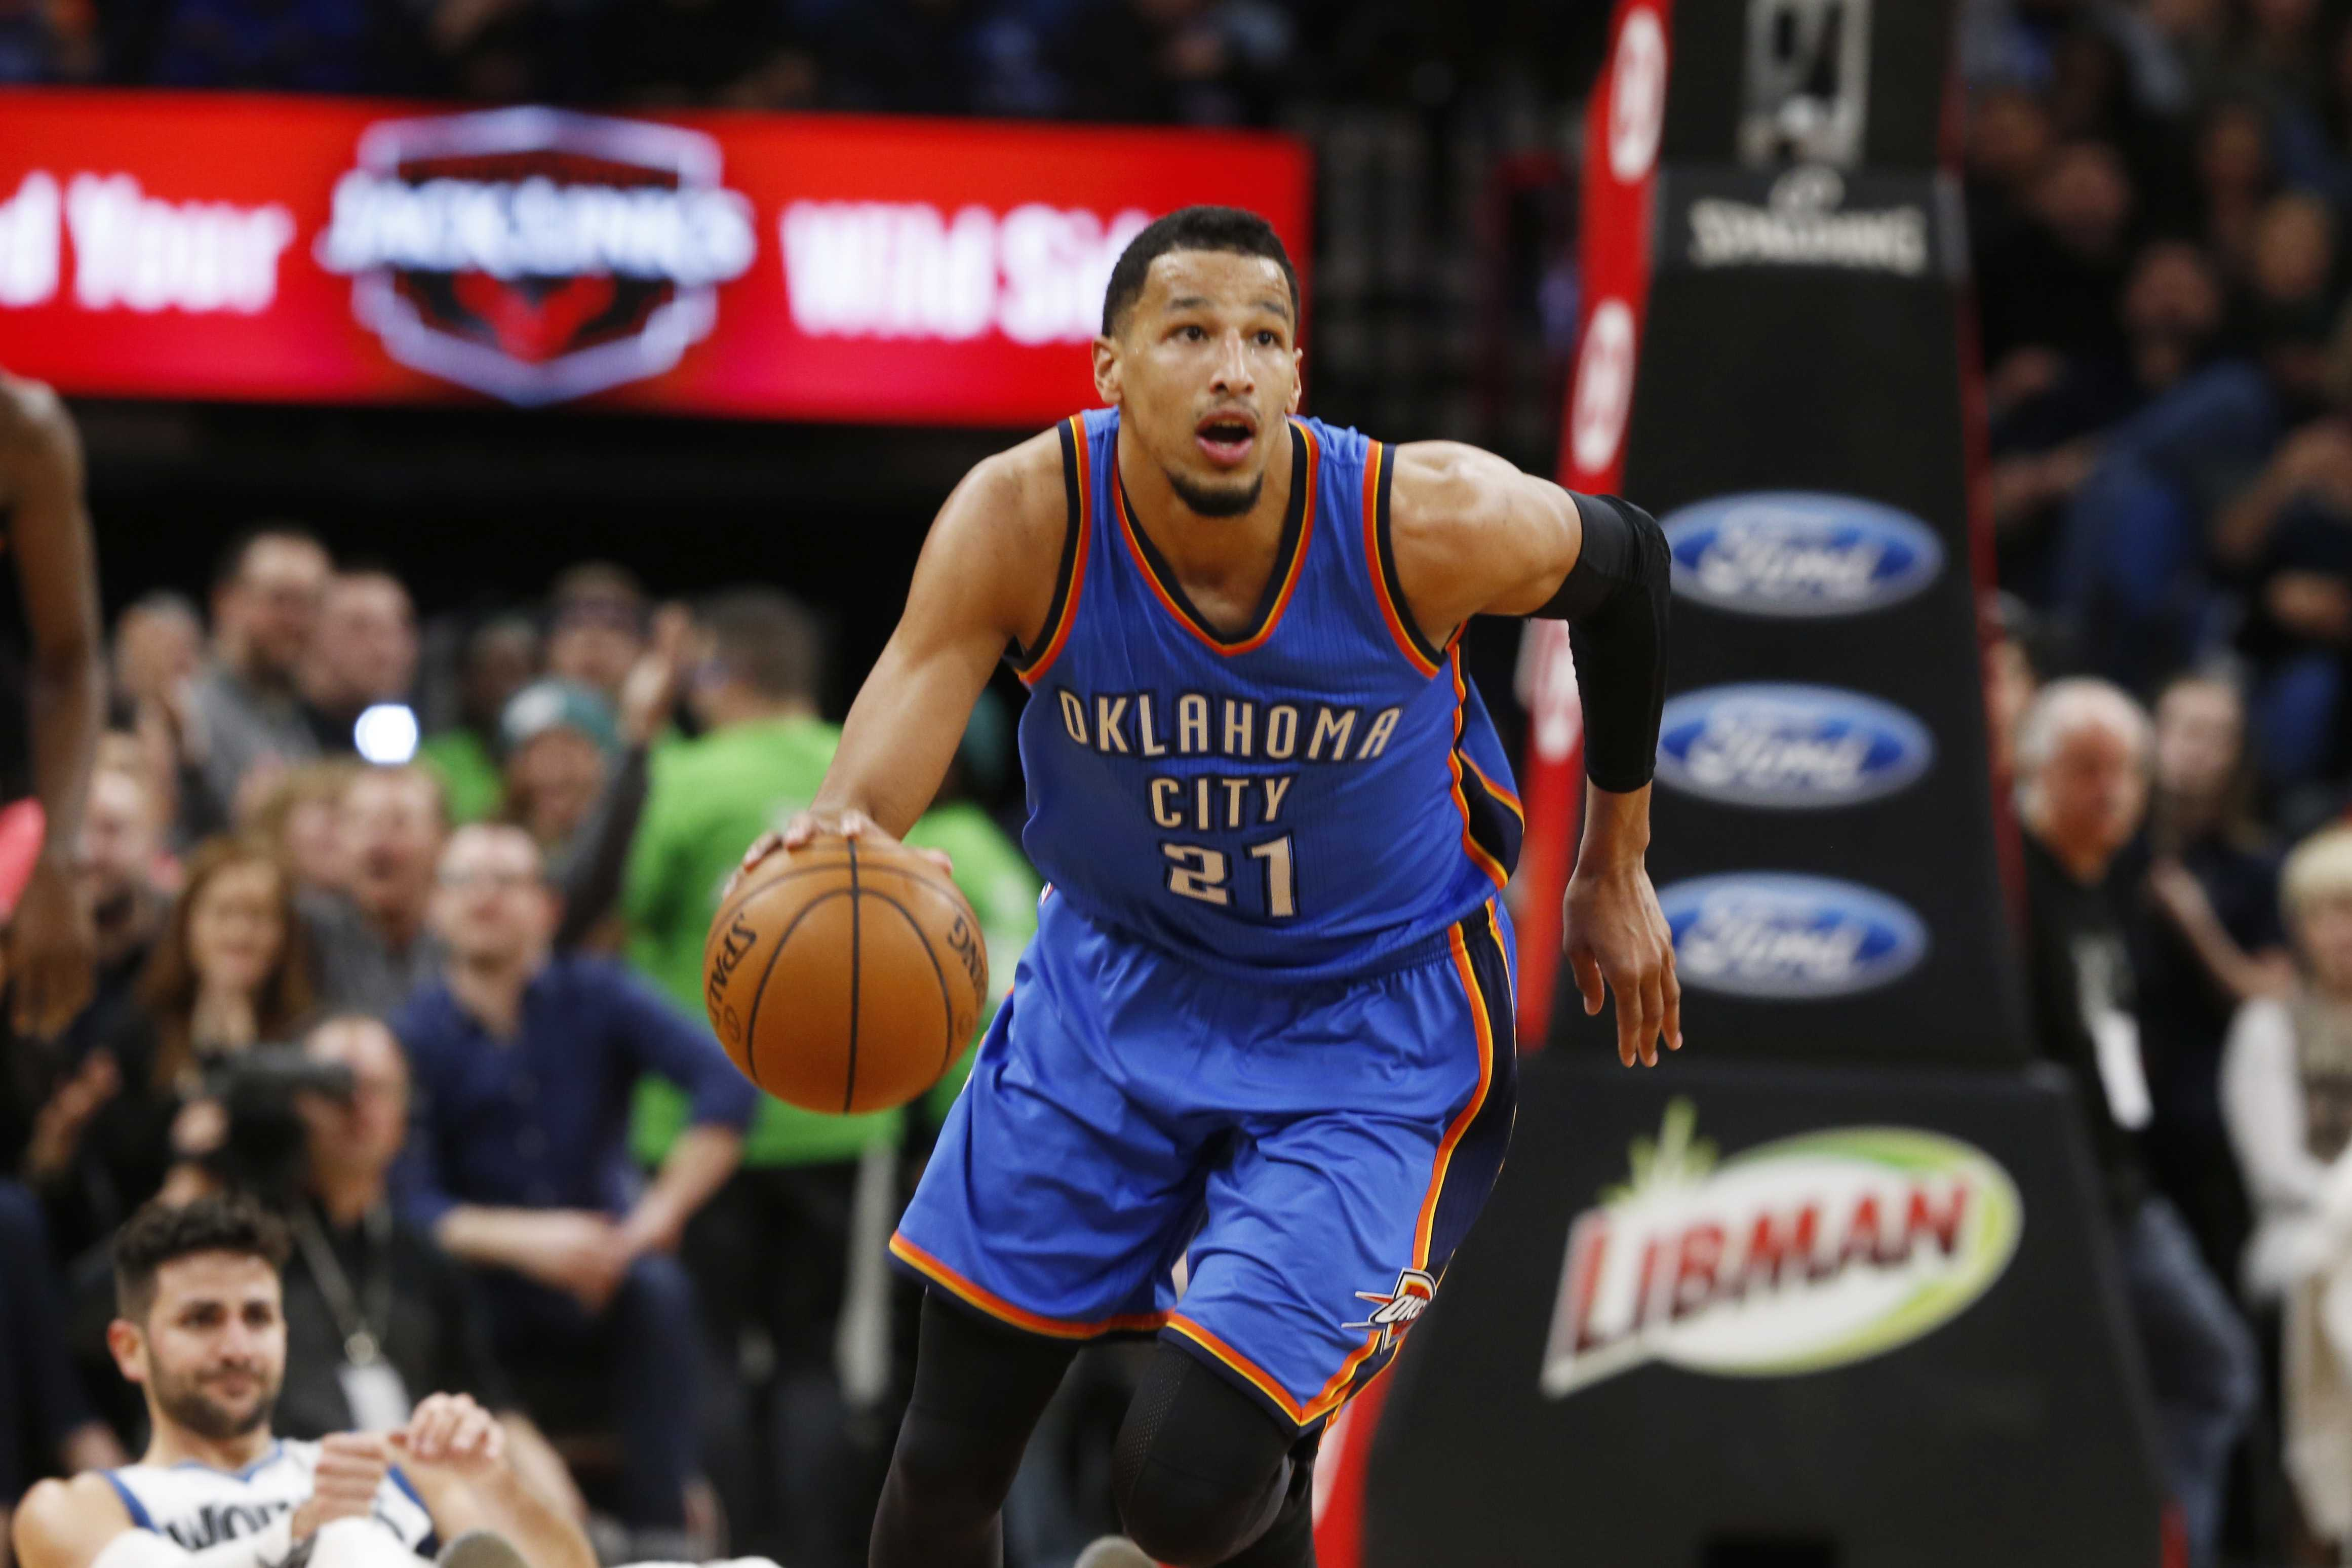 Andre Roberson gets 3-year, $30M deal from OKC — AP Source